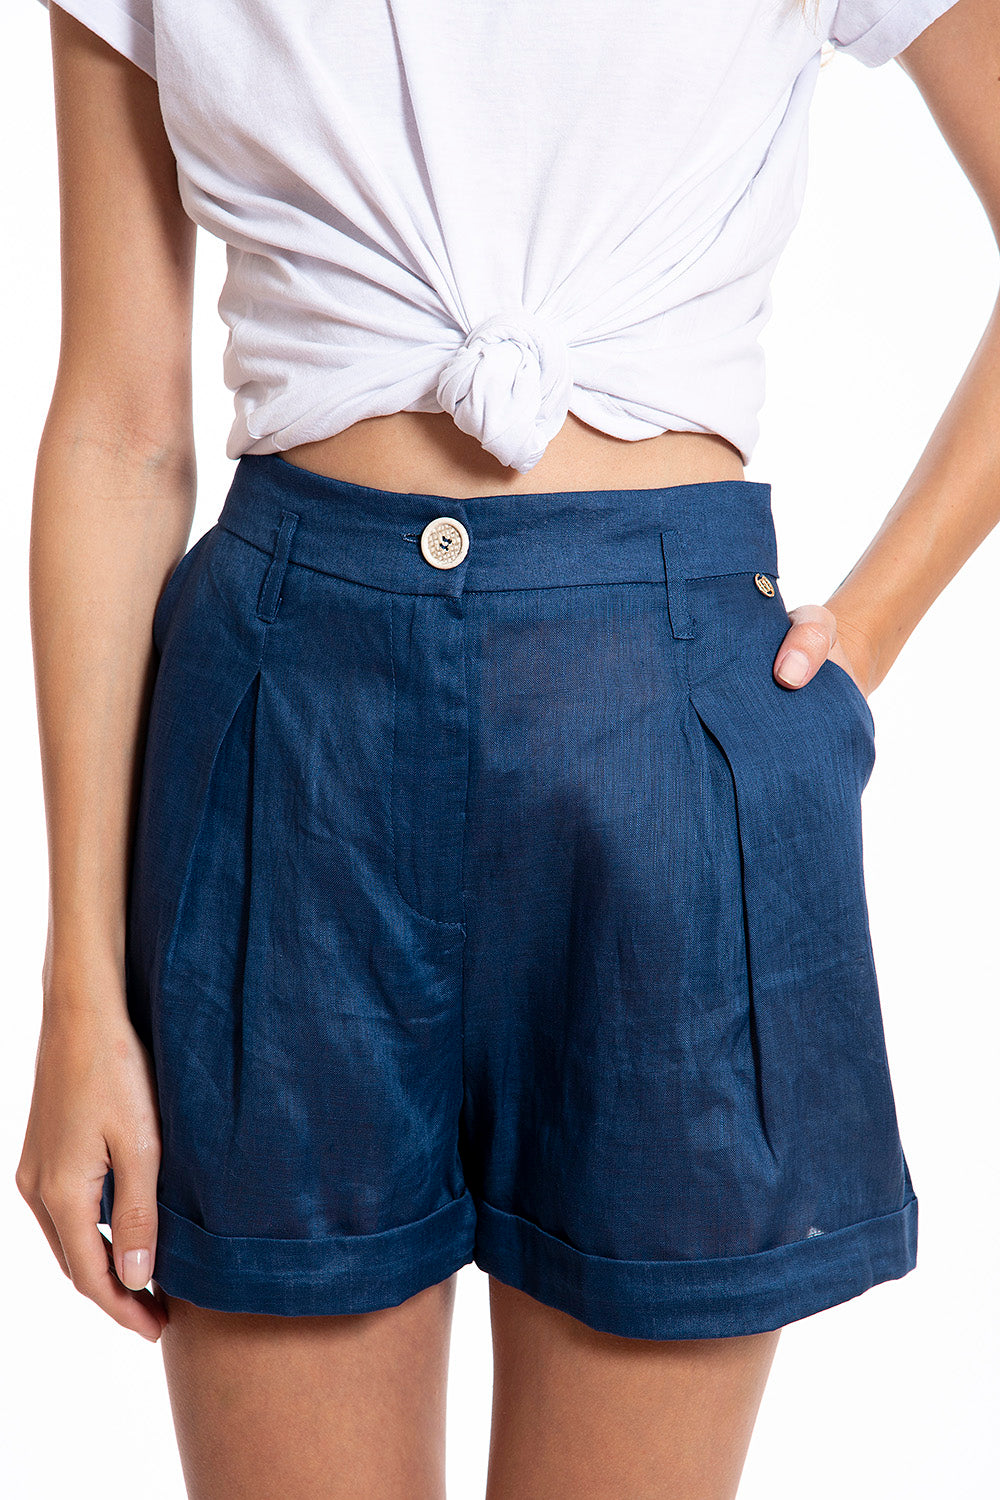 Roberta Biagi tapered linen shorts with pockets